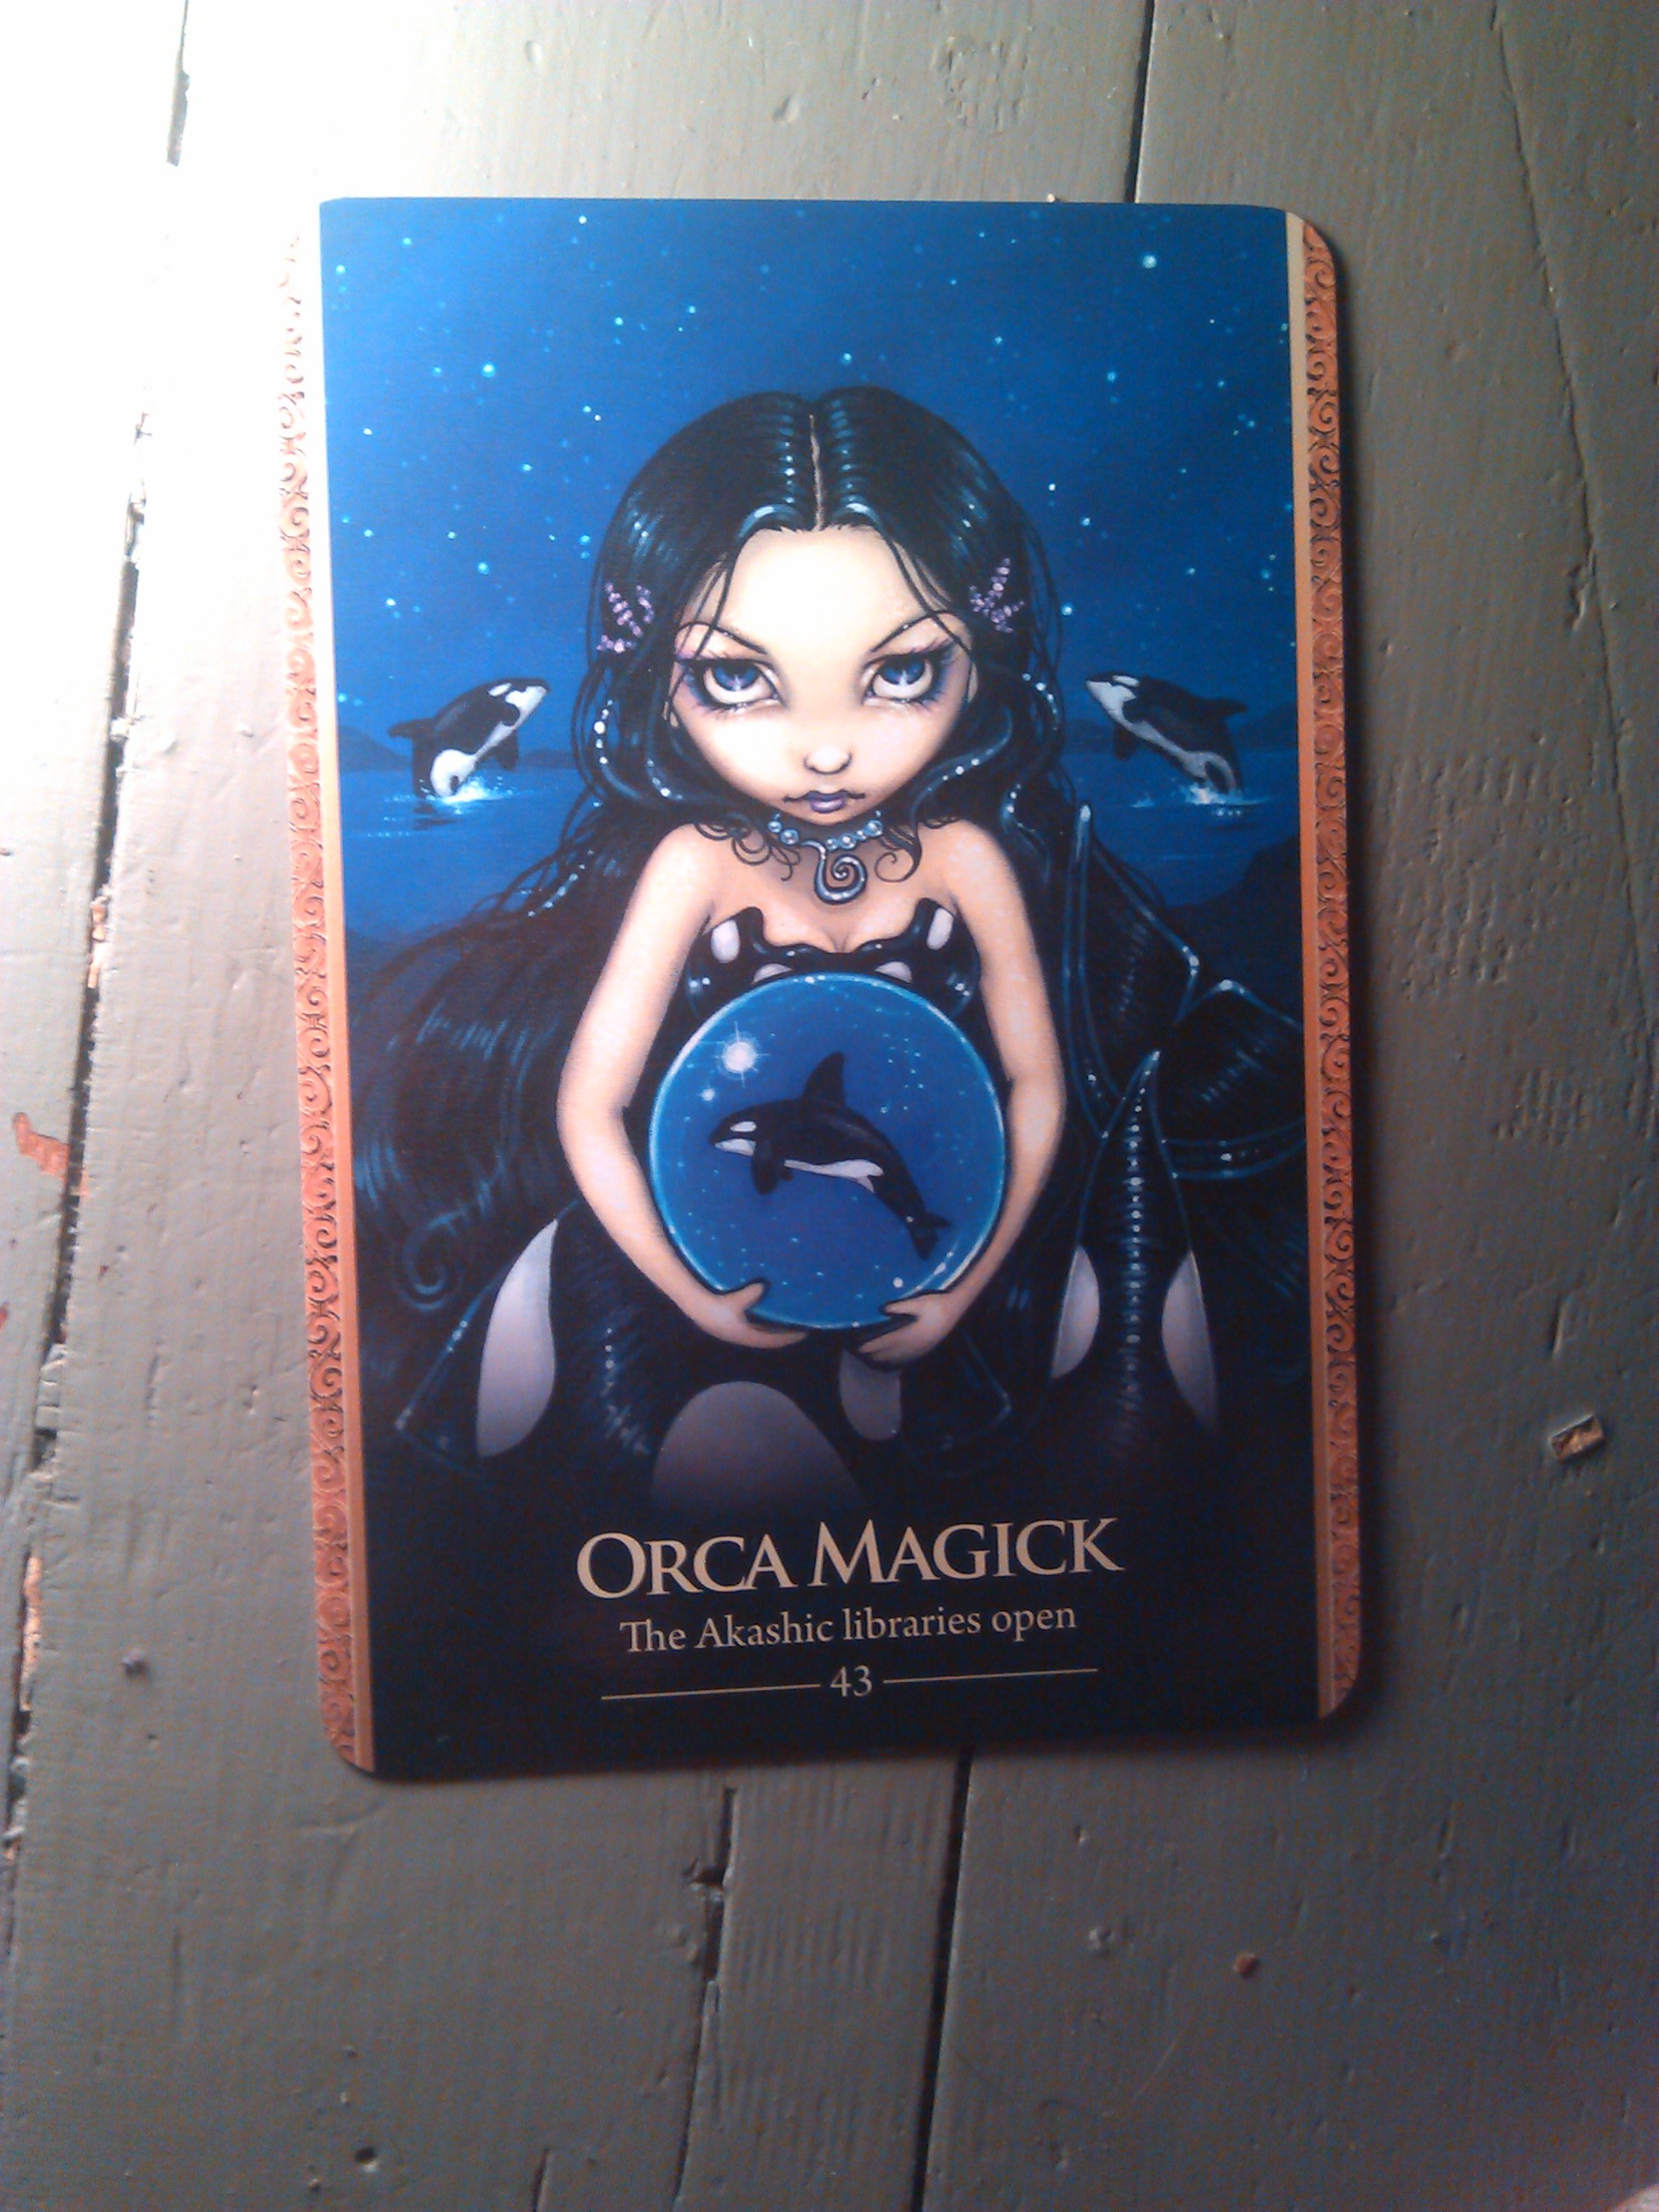 Card for Orca Magick with number 43